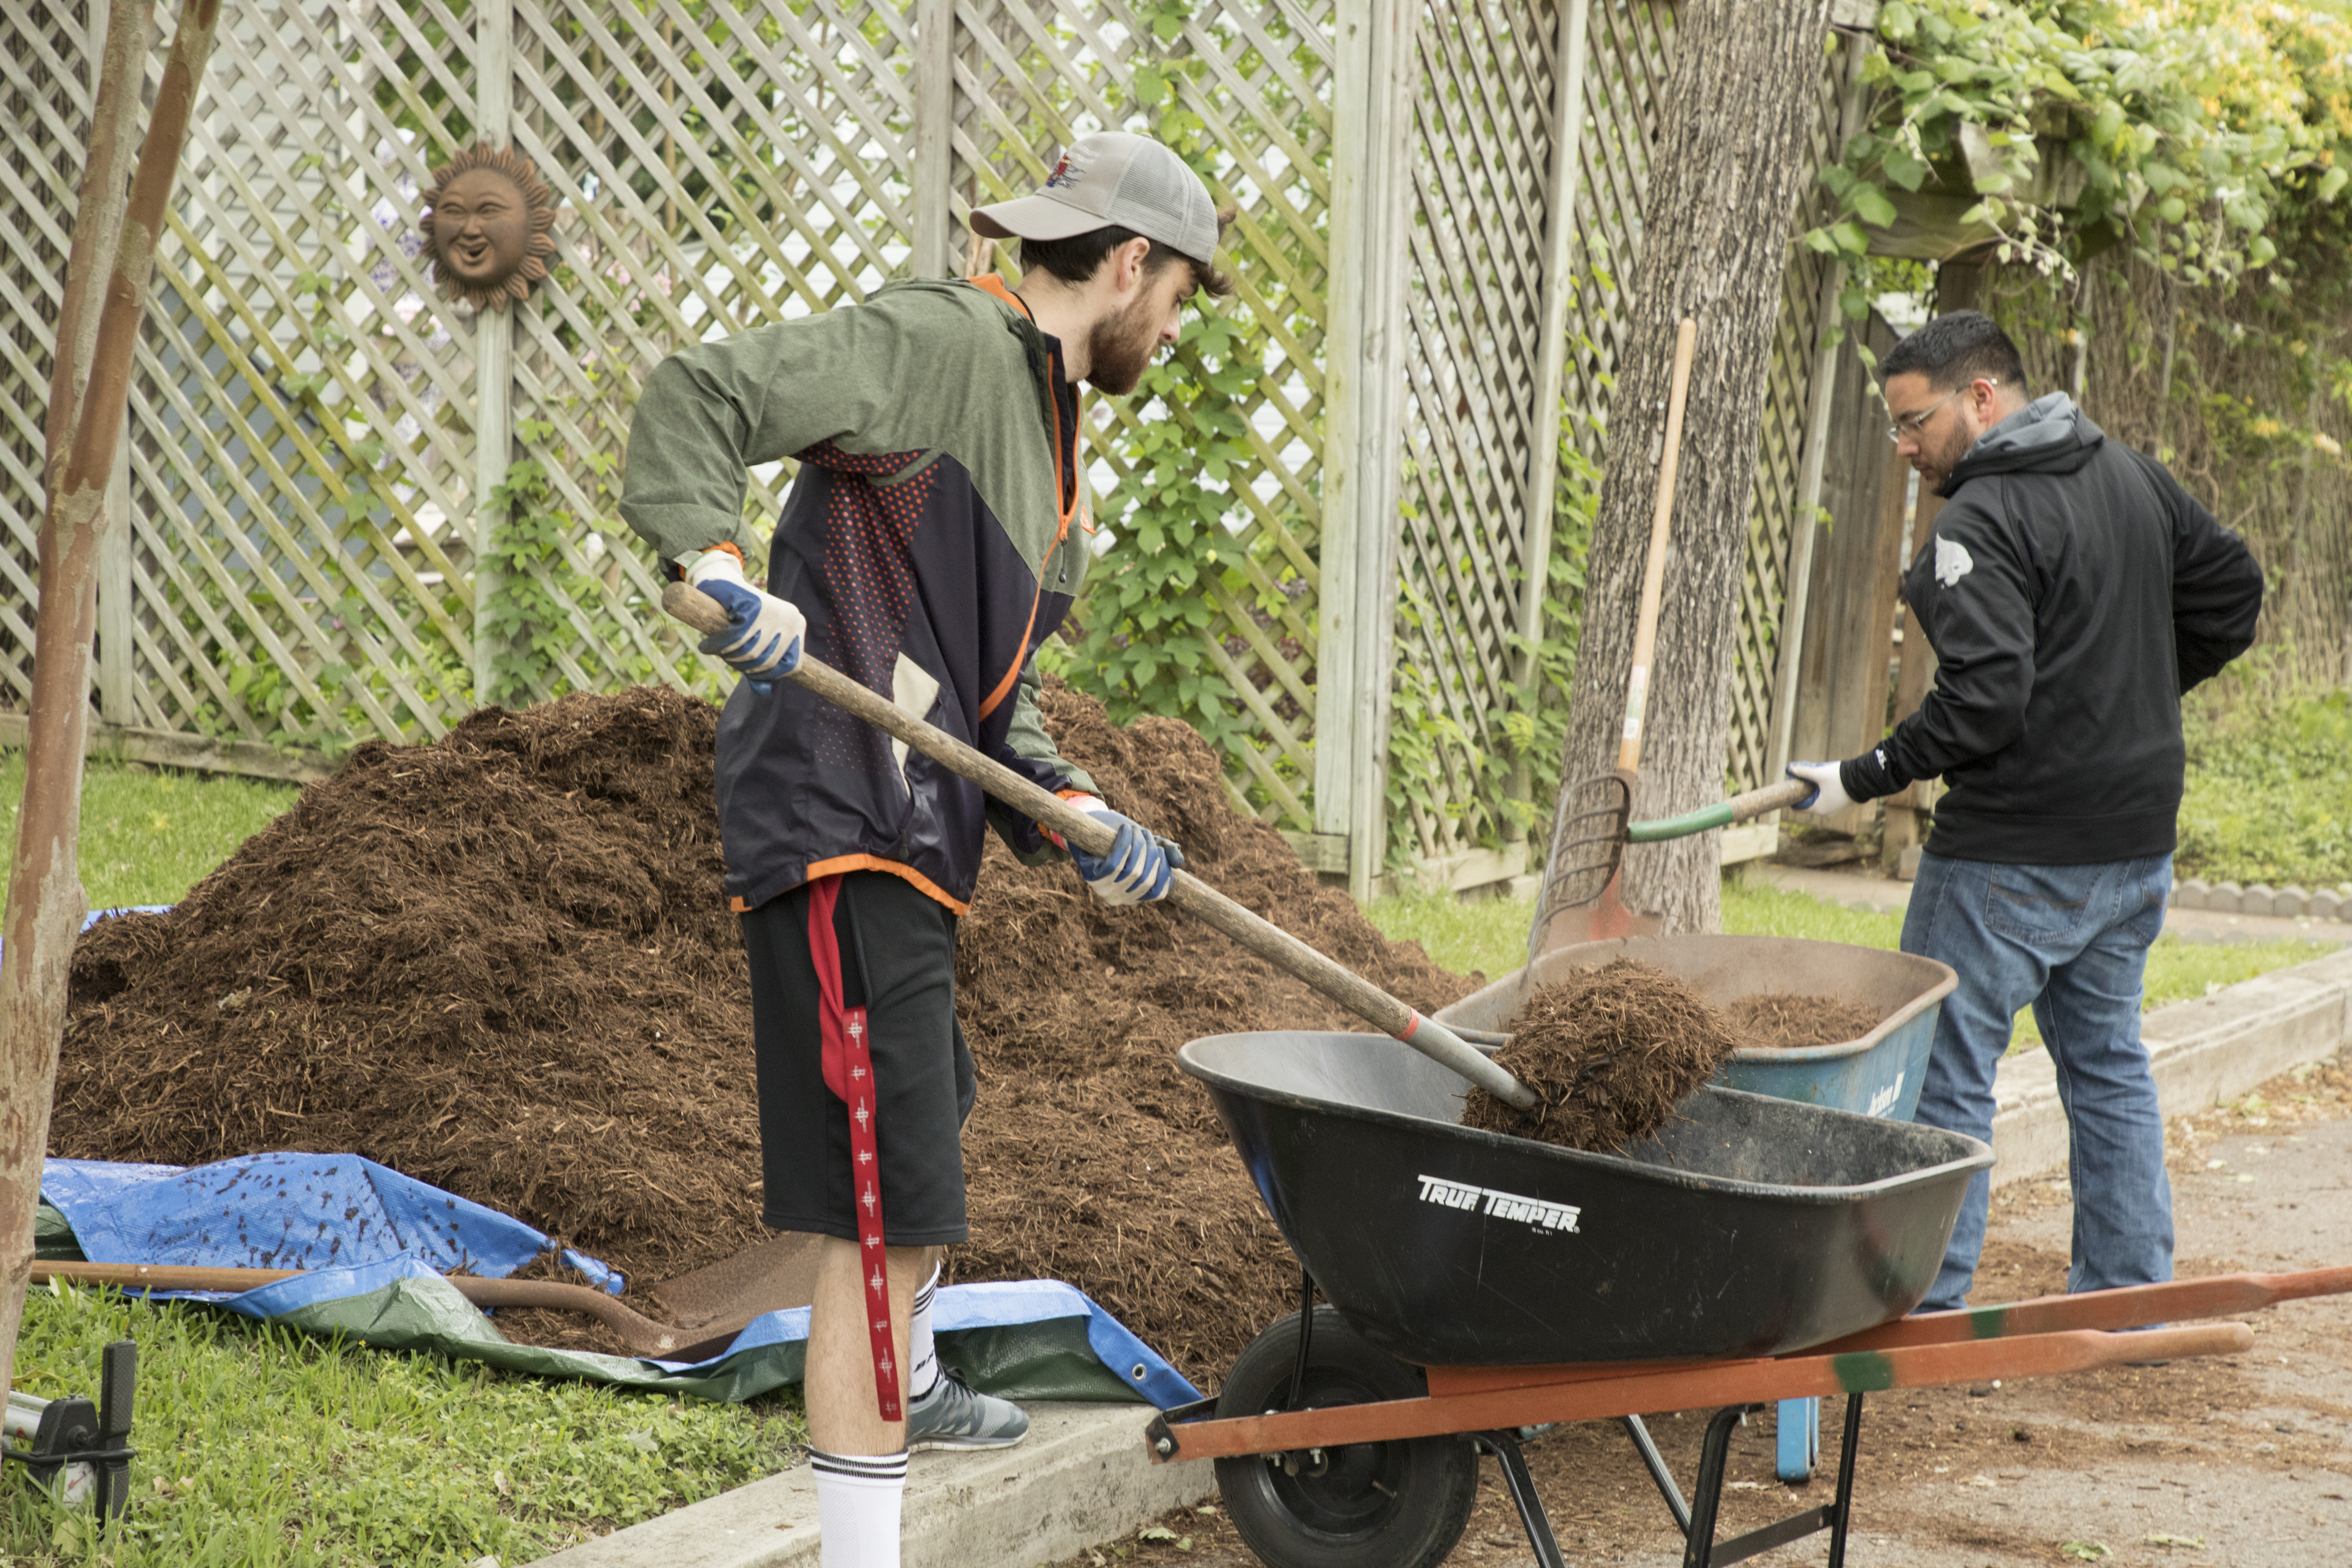 Two young men shovel shirt out of wheelbarrows during the Bobcat Build student volunteer community service.